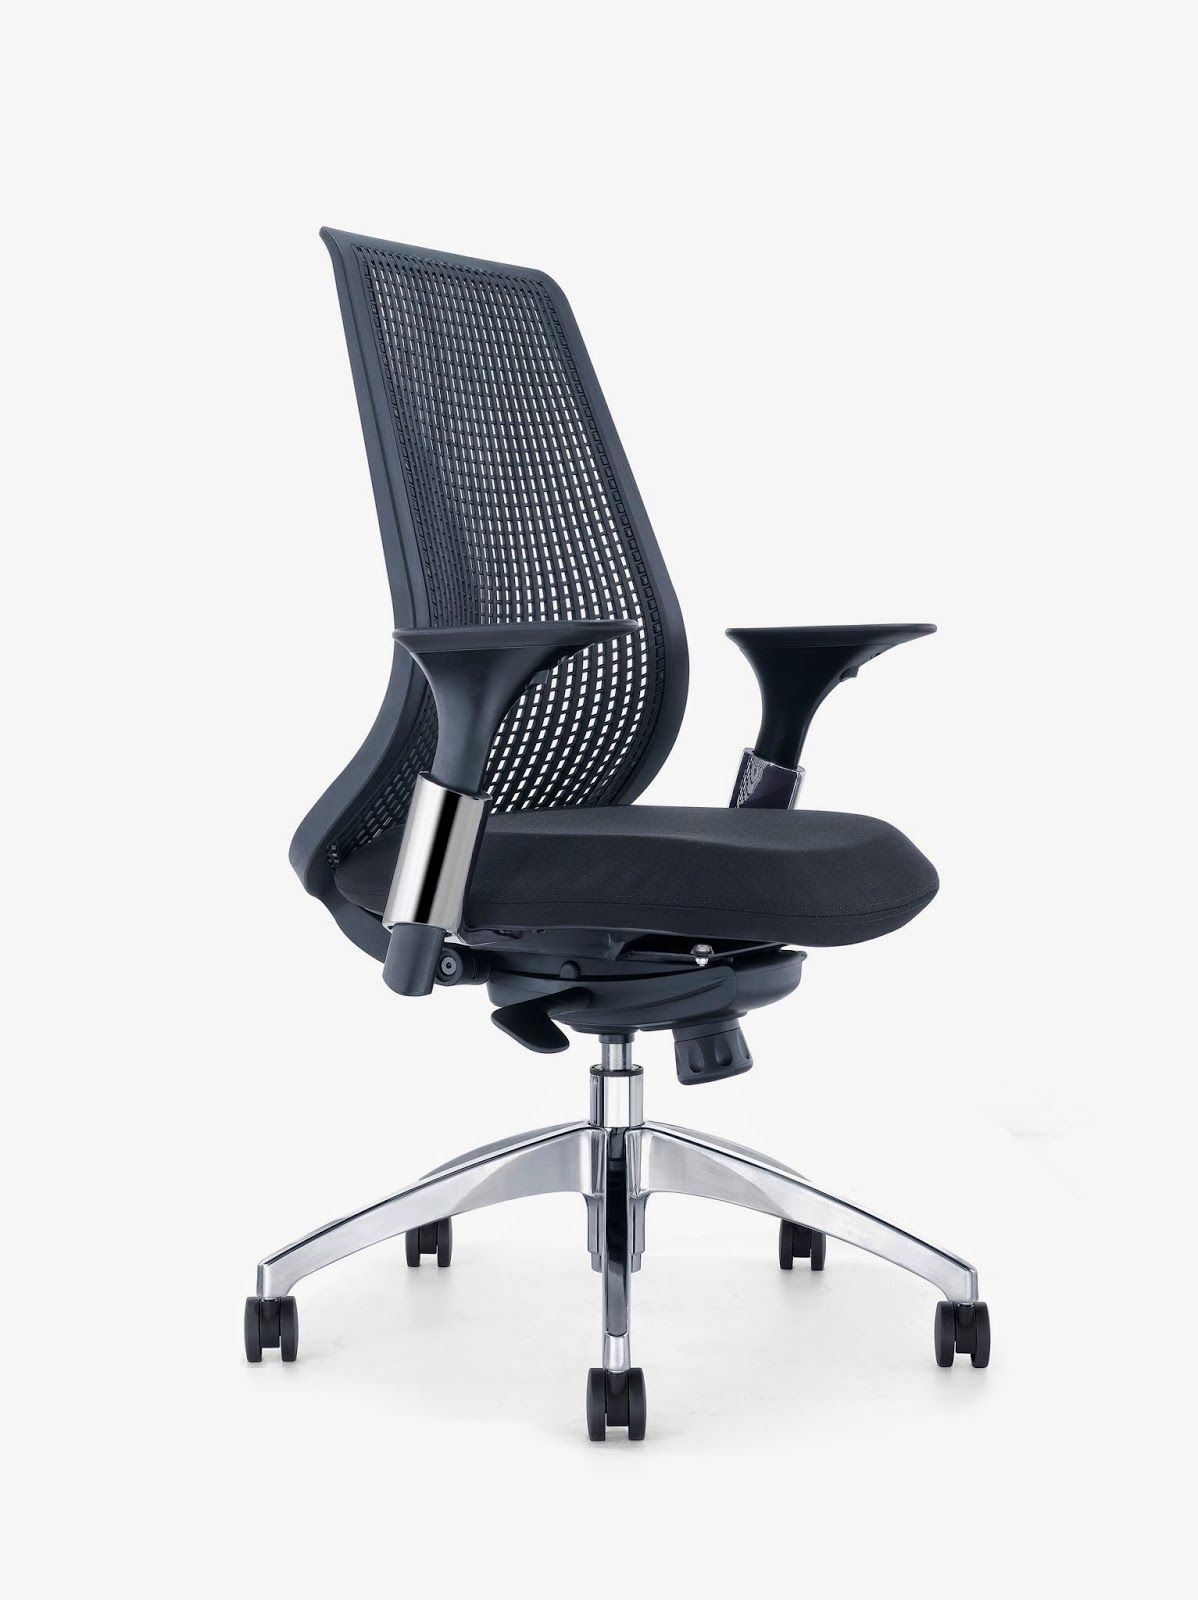 Outstanding Aldi Mesh Office Chair Machost Co Dining Chair Design Ideas Machostcouk